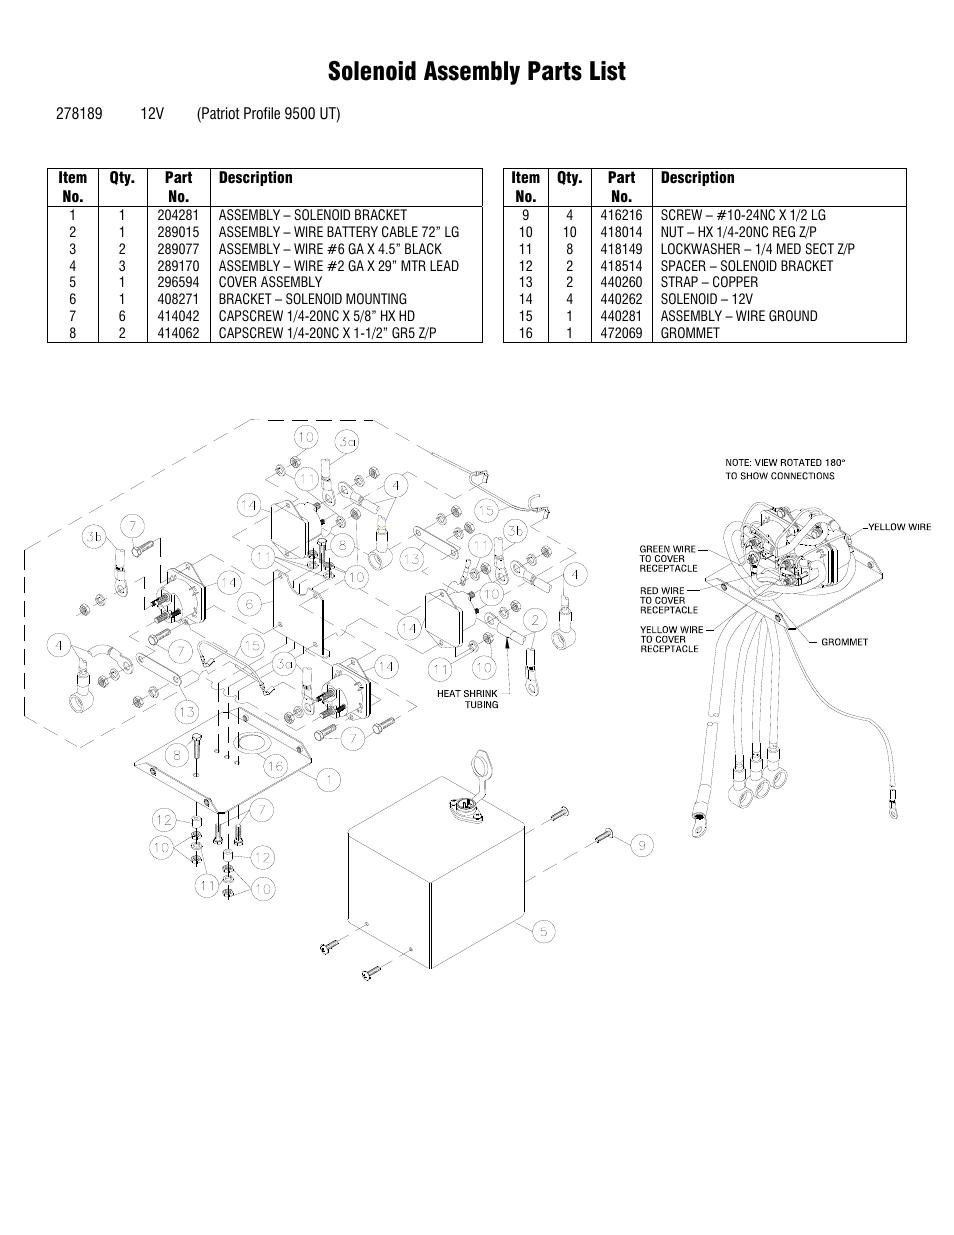 ramsey wiring diagram solenoid assembly parts list ramsey winch patriot profile 9500 ramsey rep 8000 wiring diagram ramsey winch patriot profile 9500